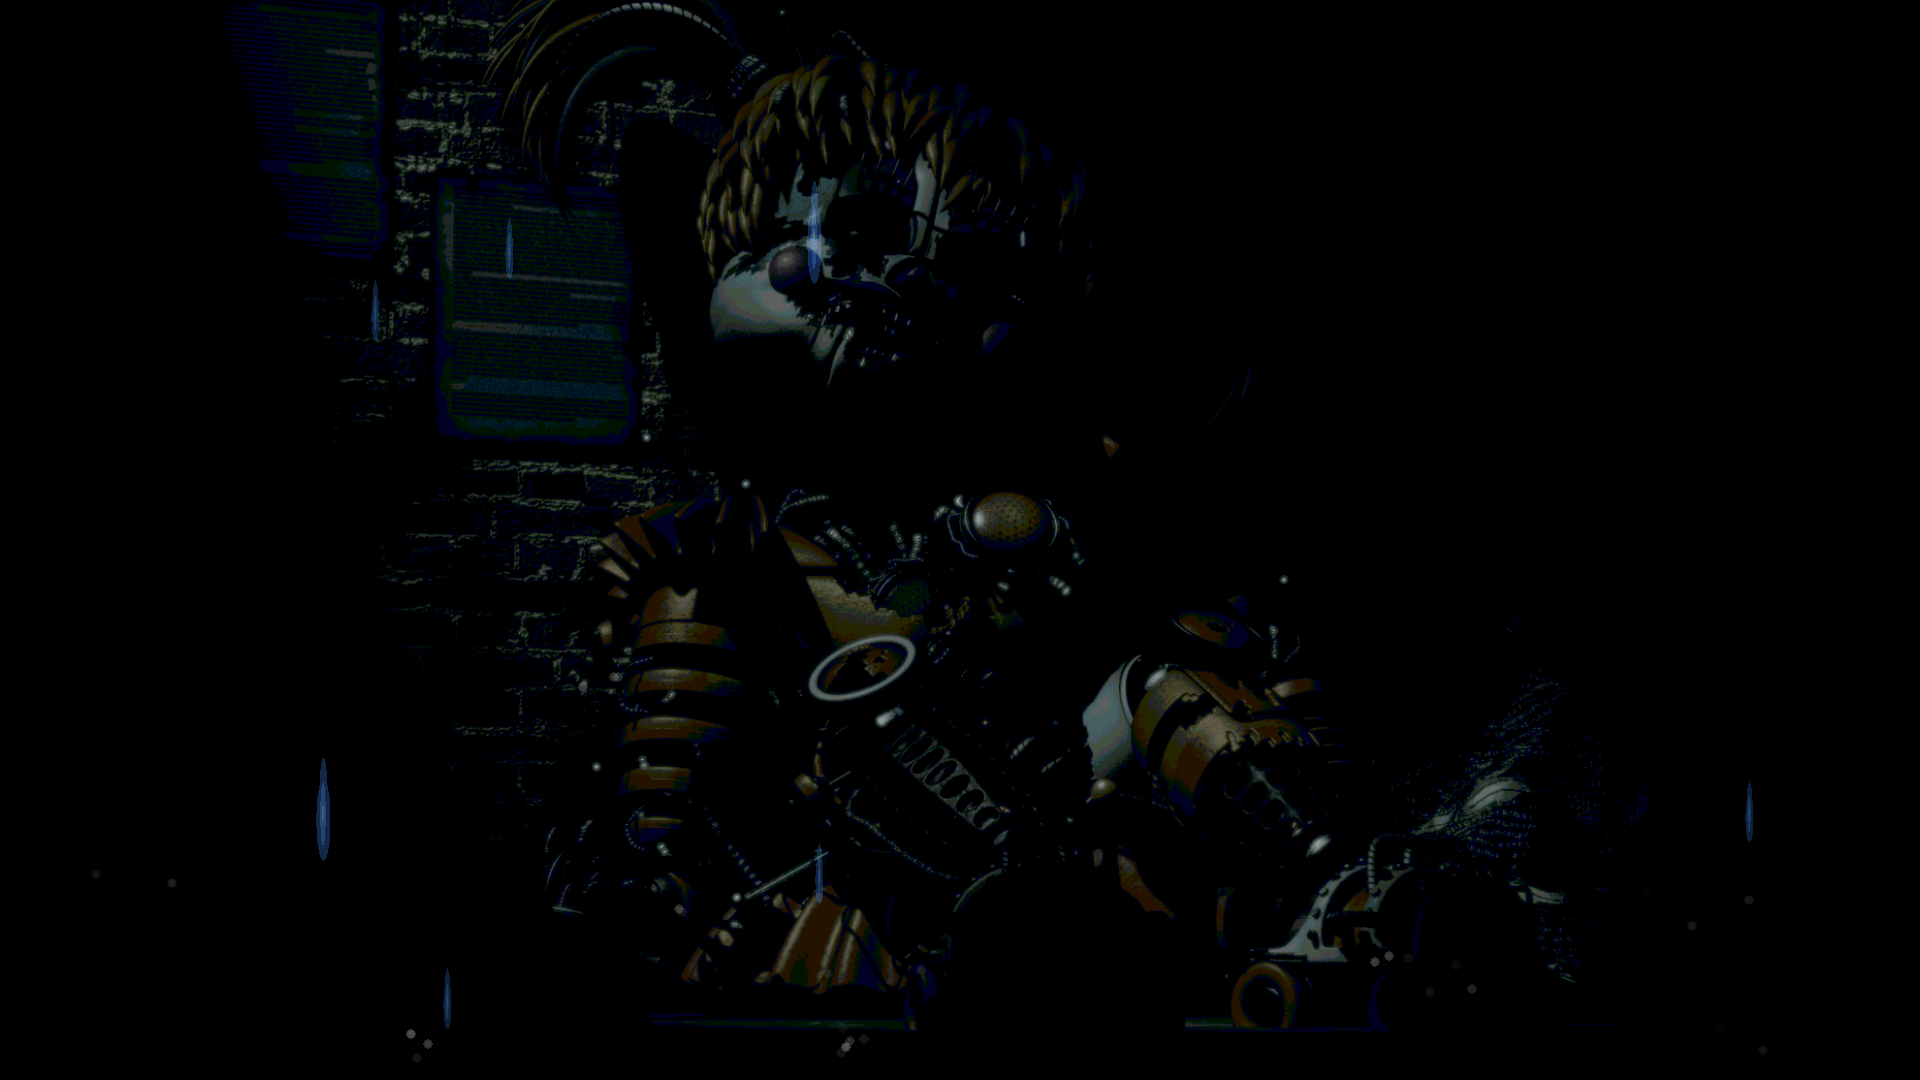 Bendy And The Ink Machine Main Characters Cute Wallpaper Freddy Fazbear S Pizzeria Simulator Fnaf6 List Of All